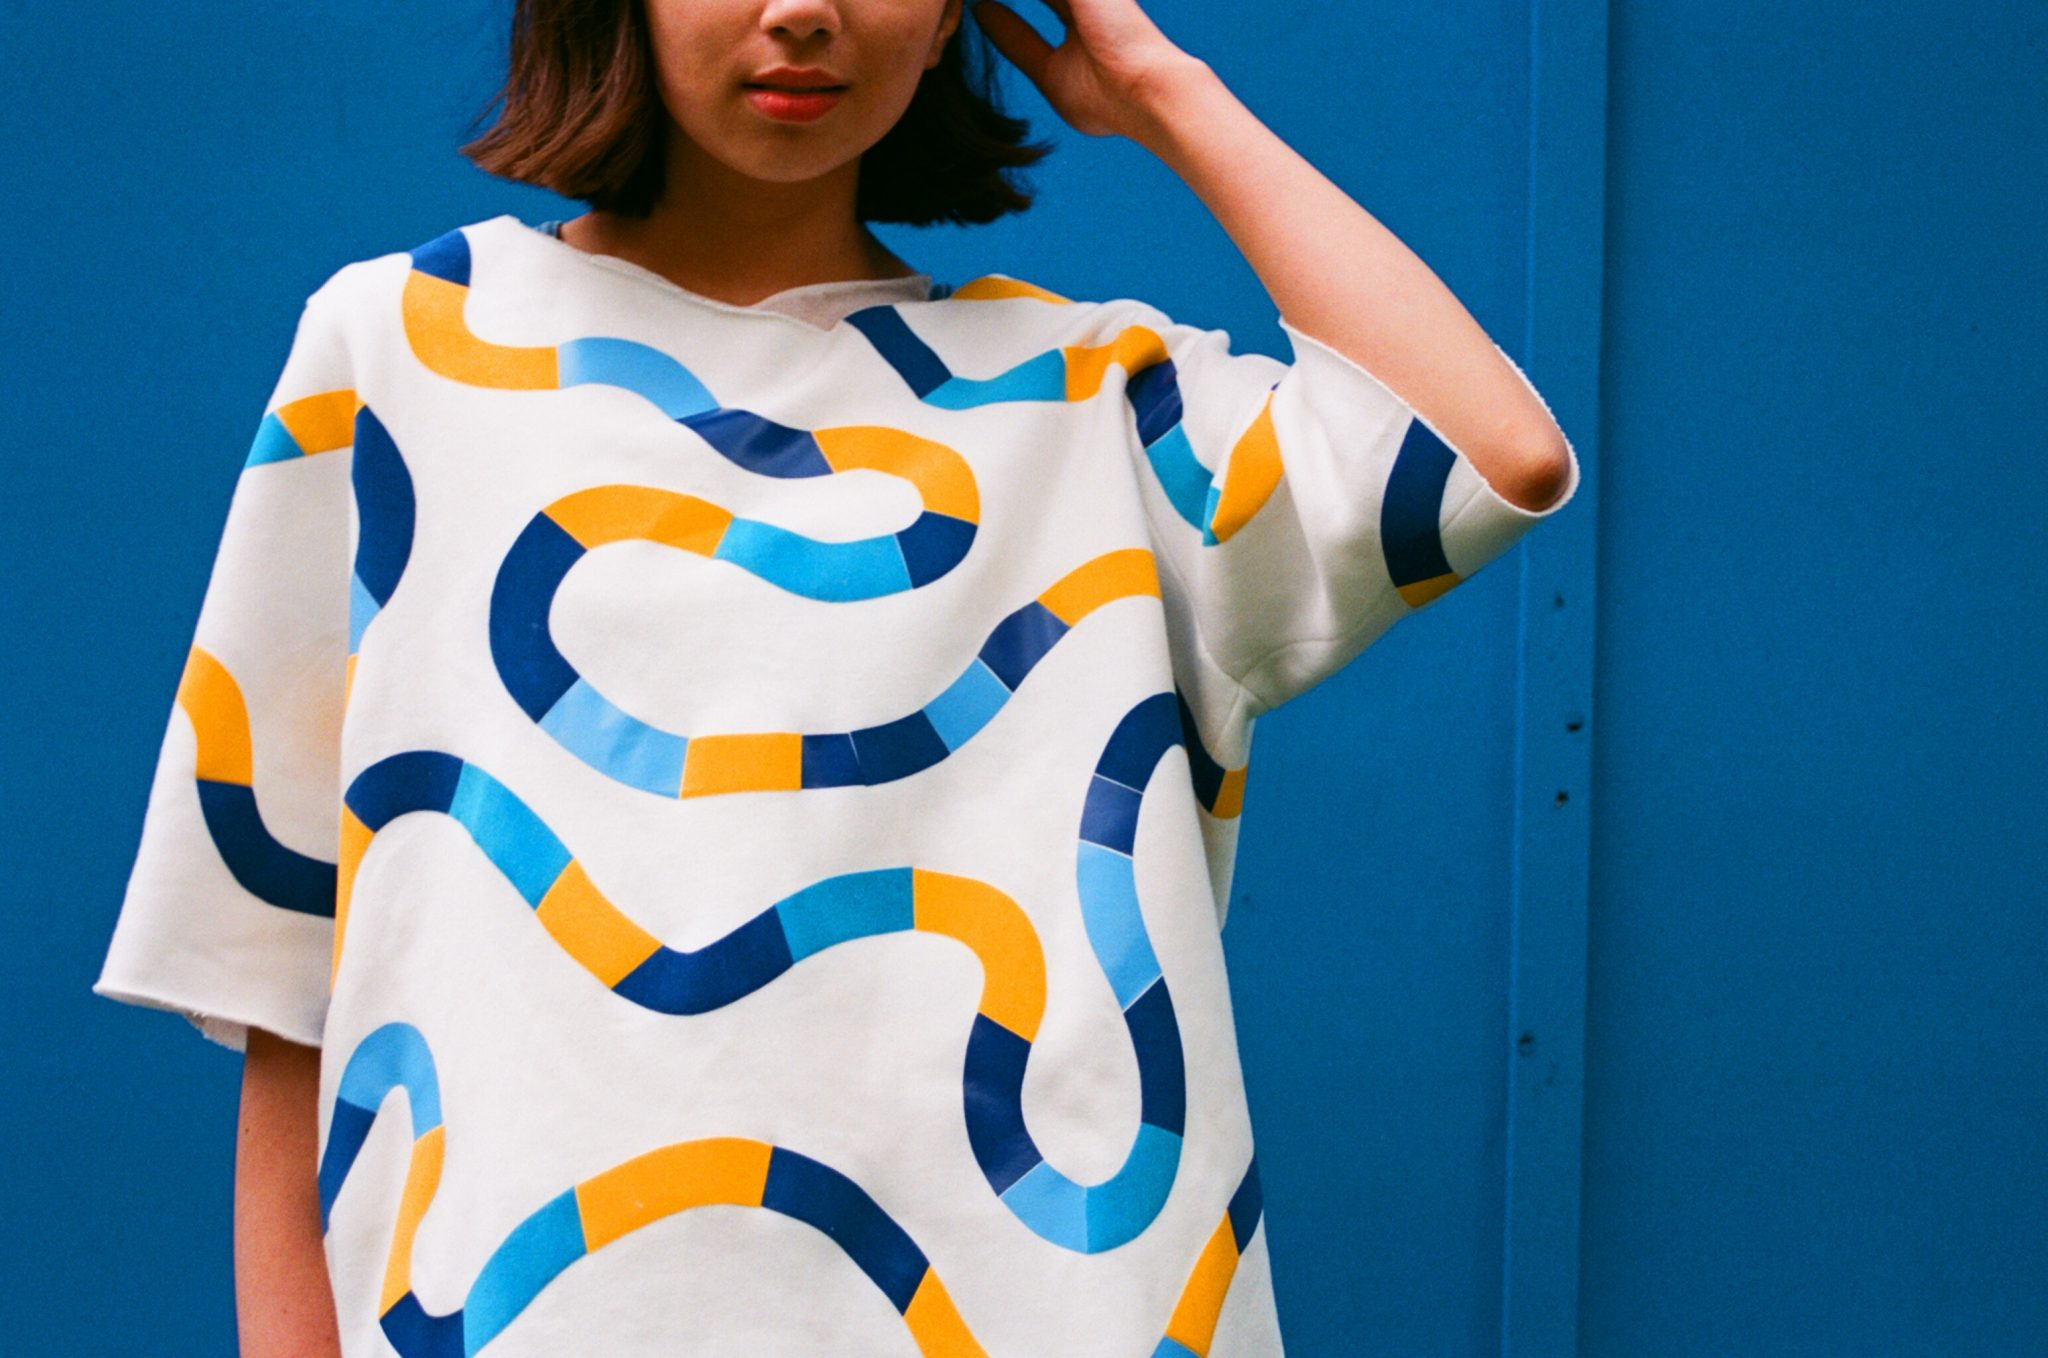 Marble run flocked jumper, photo taken by @bluelaybourne